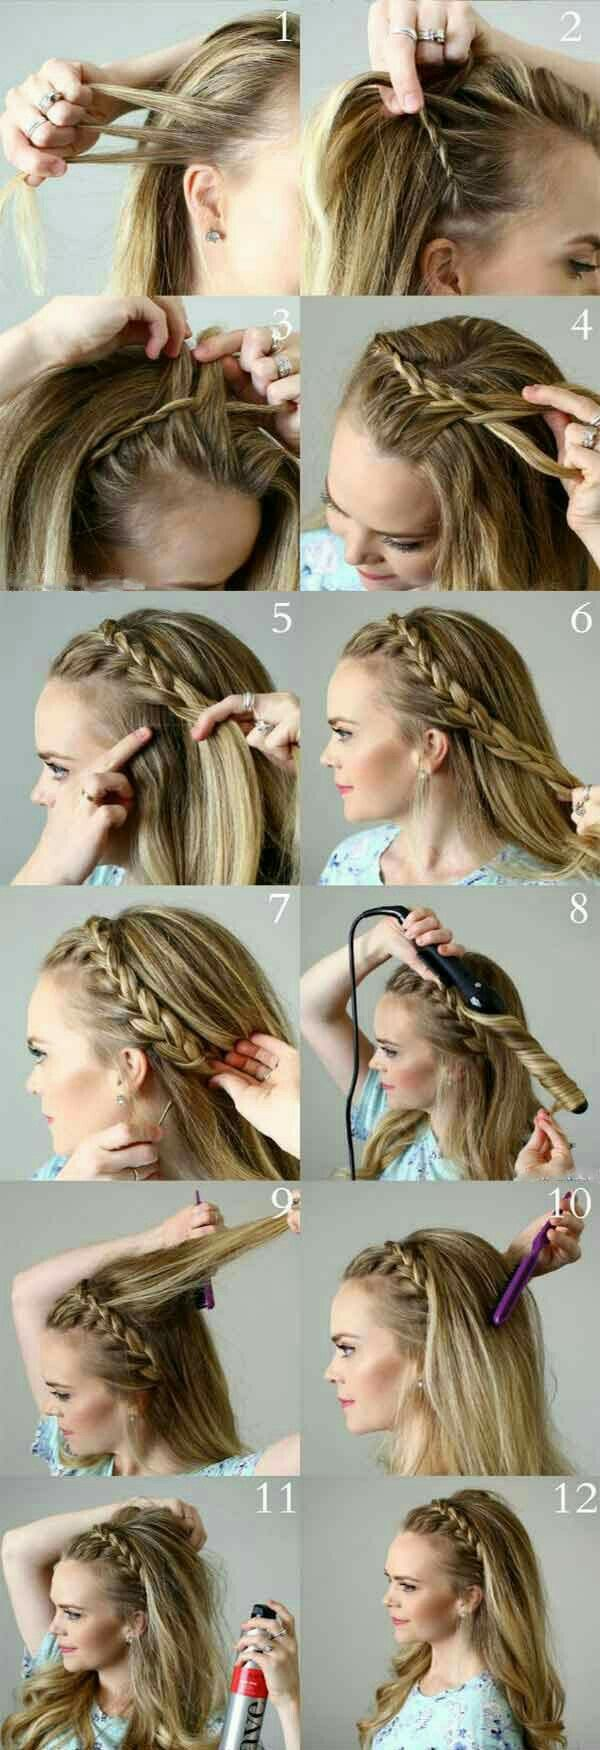 Pin By Julia Bissoli On Beautiful Hair Style Photos Stylish Hair Photos In 2020 Braided Hairstyles Braided Headband Hairstyle Hair Styles